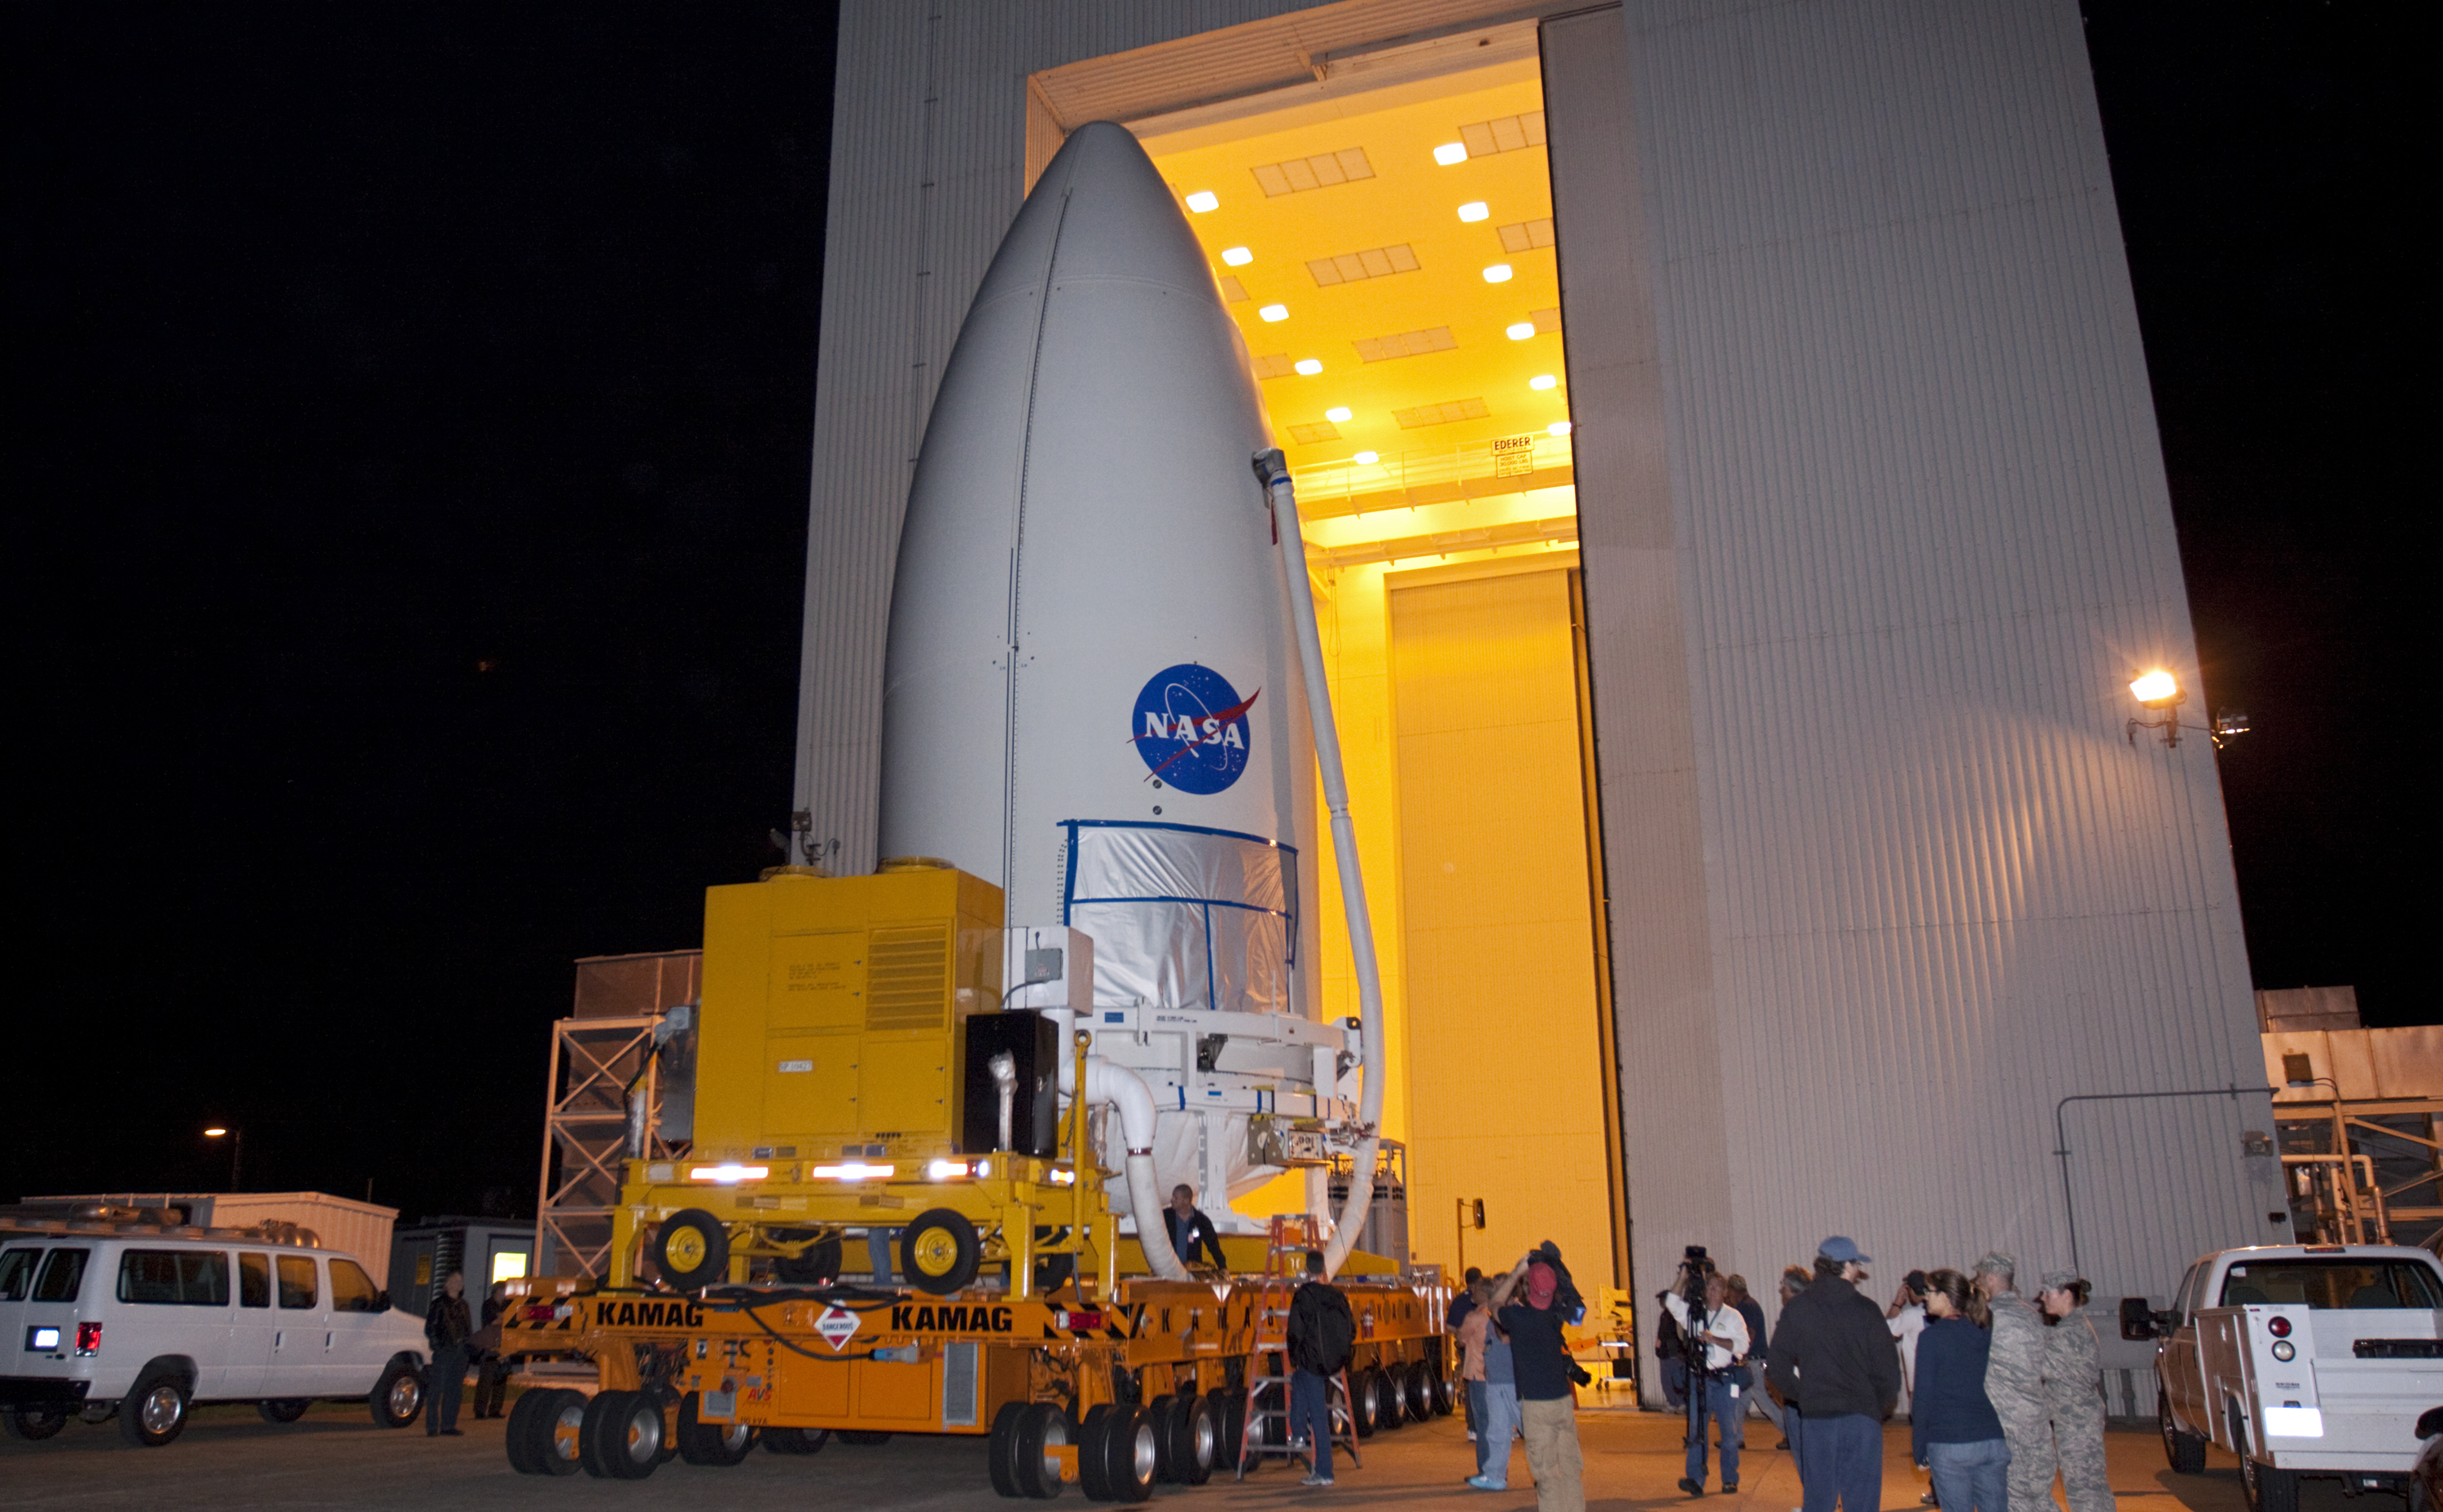 Standing atop a payload transporter, the Atlas V rocket payload fairing containing NASA's Mars Science Laboratory (MSL) spacecraft rolls out of the Payload Hazardous Servicing Facility at Kennedy Space Center in Florida, beginning the move to Space Launch Complex 41.